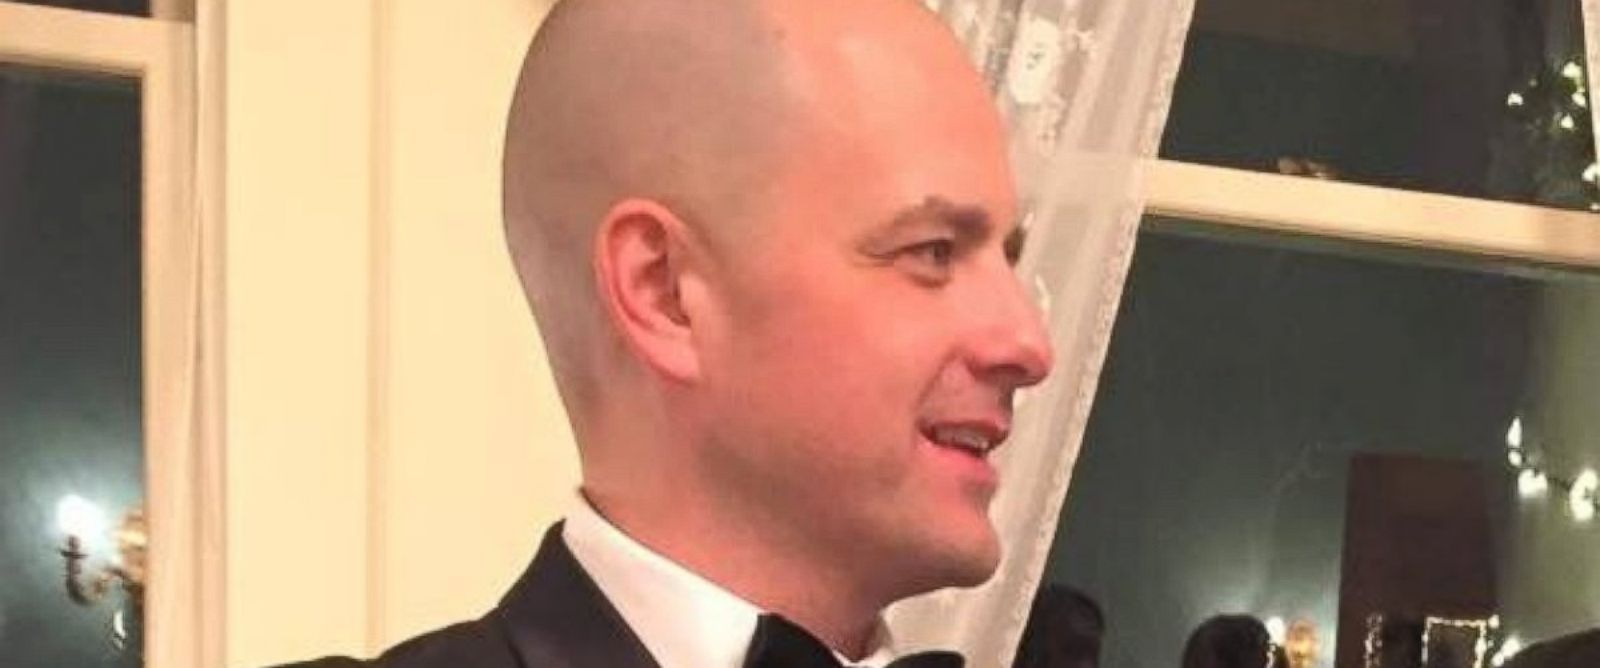 PHOTO: Evan McMullin is seen in this undated profile photo from his Facebook page.